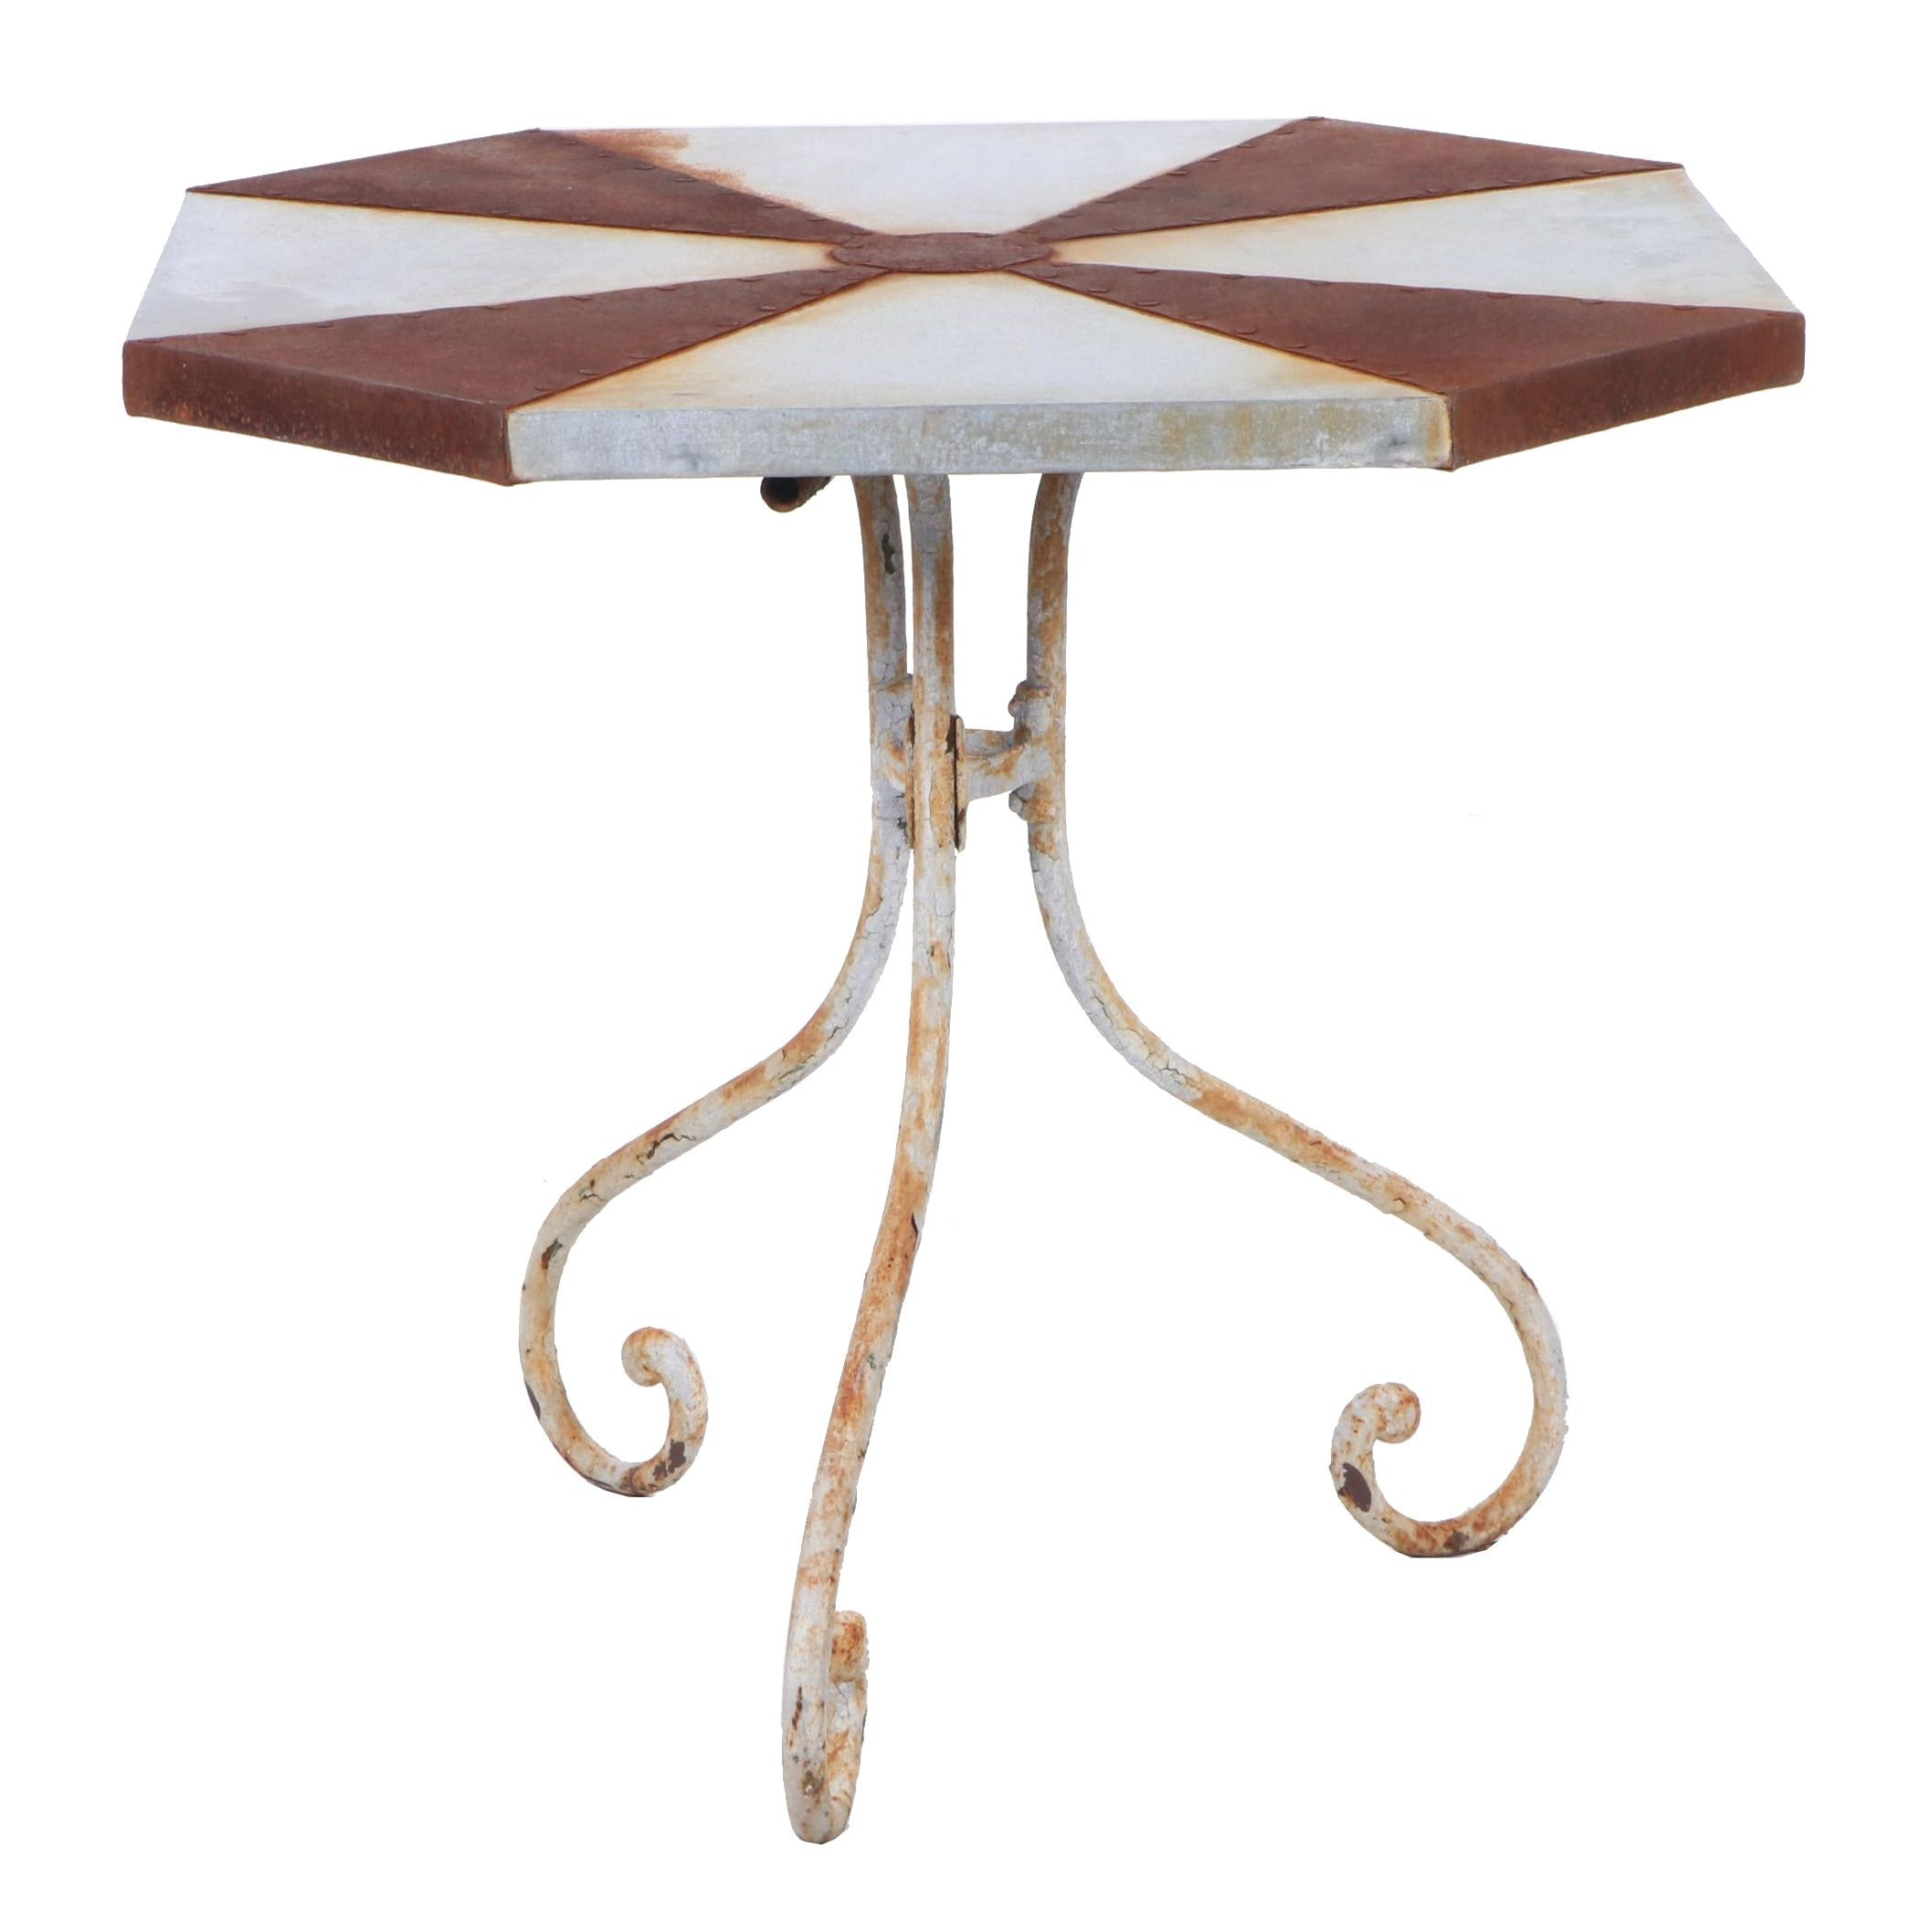 Weathered Painted Metal Octagonal Breakfast or Center Table, Mid 20th Century